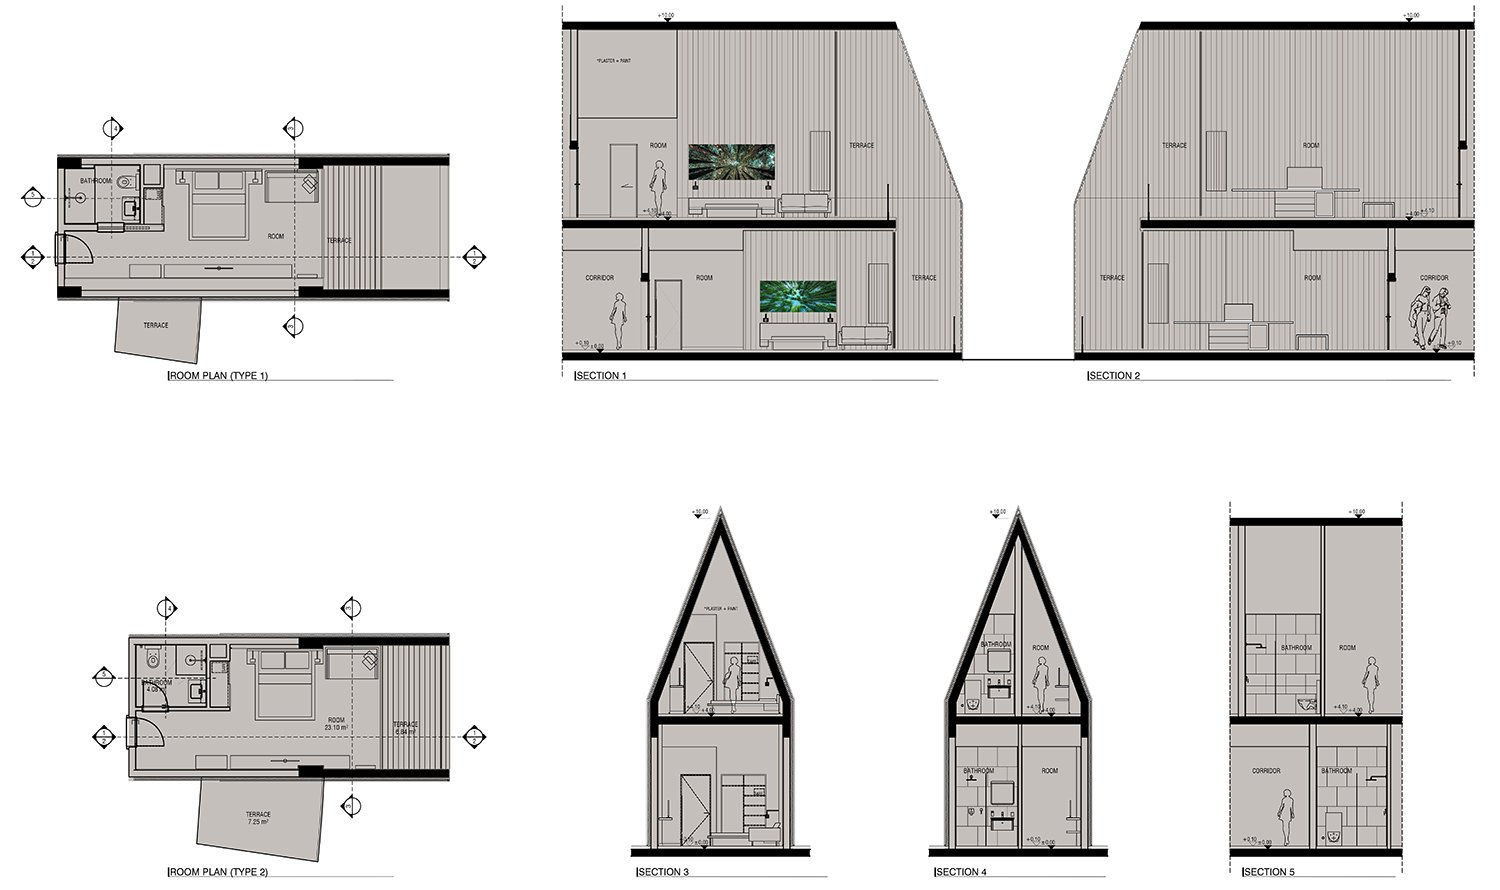 Voronet Lila Hotel typical room plans and sections Yazgan Design Architecture}